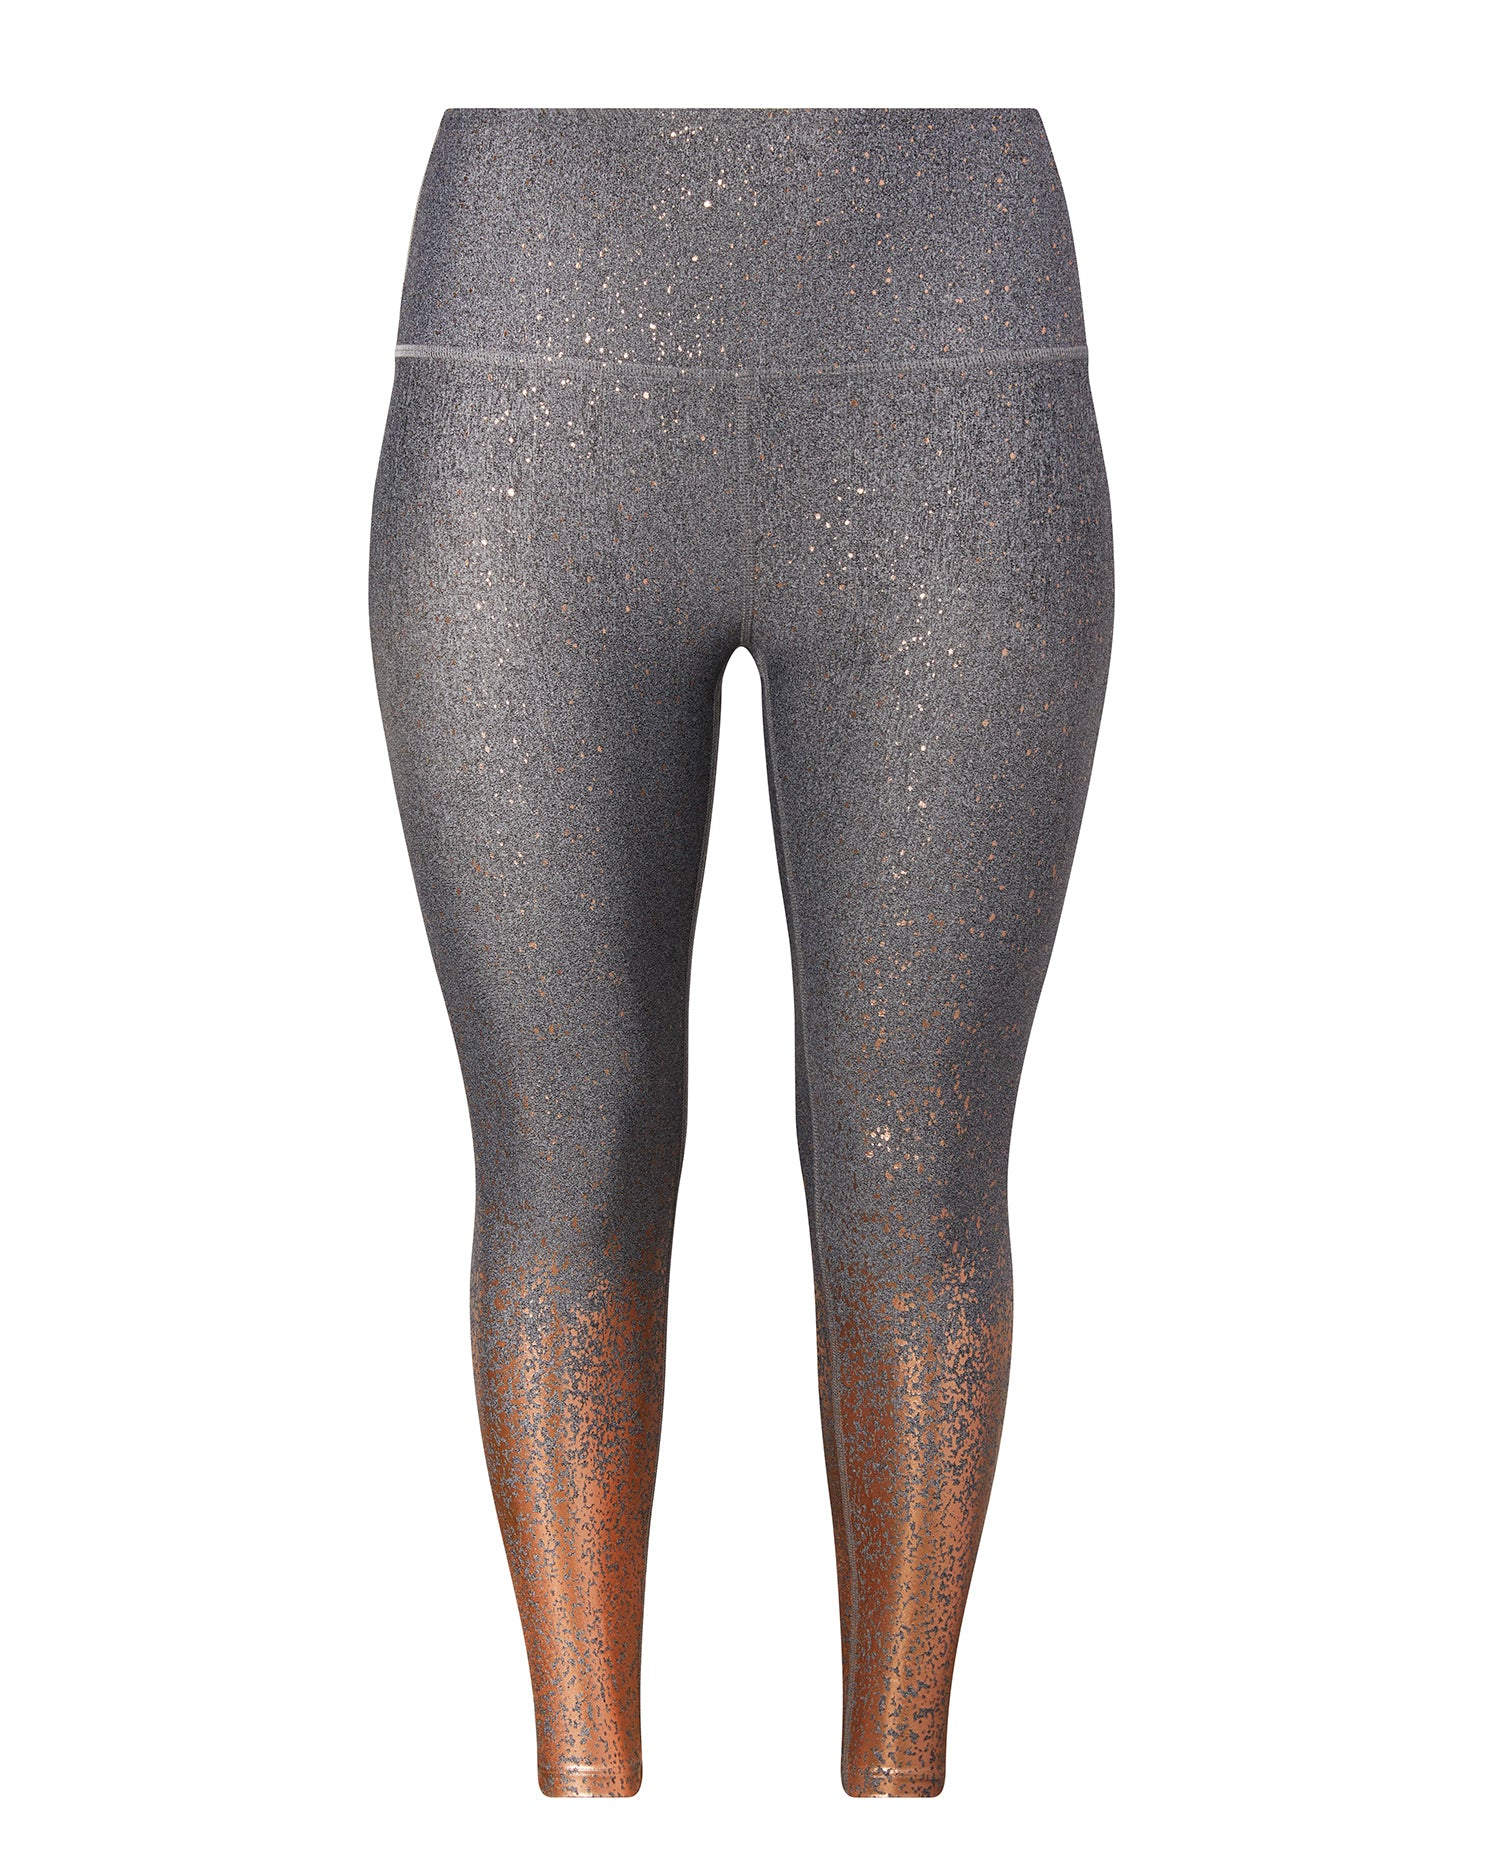 5c9a11d66c Beyond Yoga Black-White Rose Gold Speckle Alloy Ombre High Waisted Midi  Legging – 11 Honoré